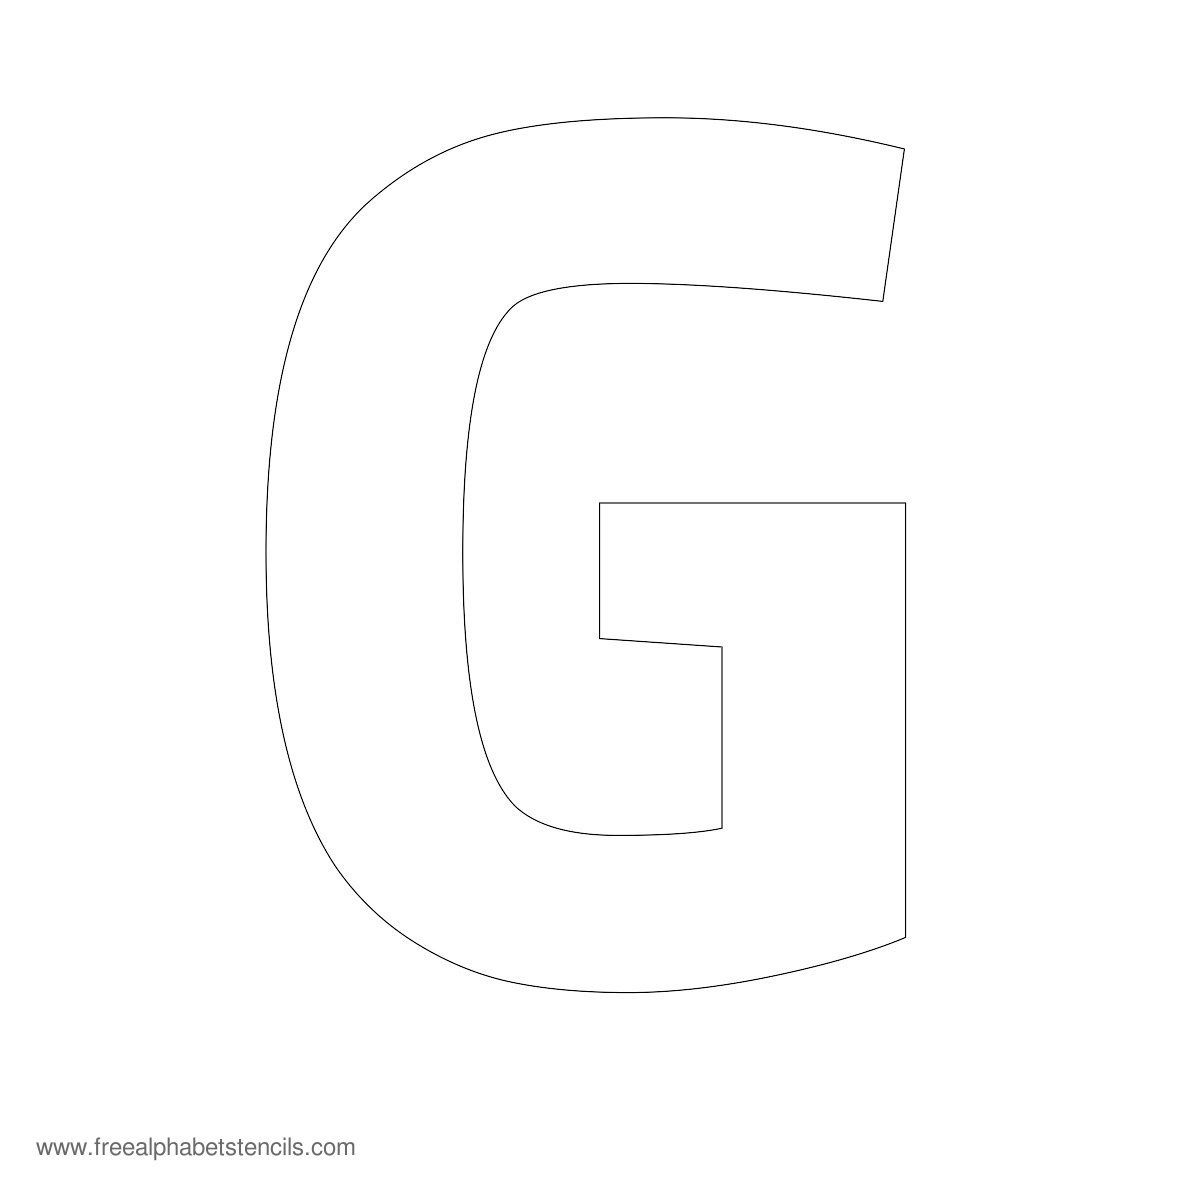 A stencil of the letter